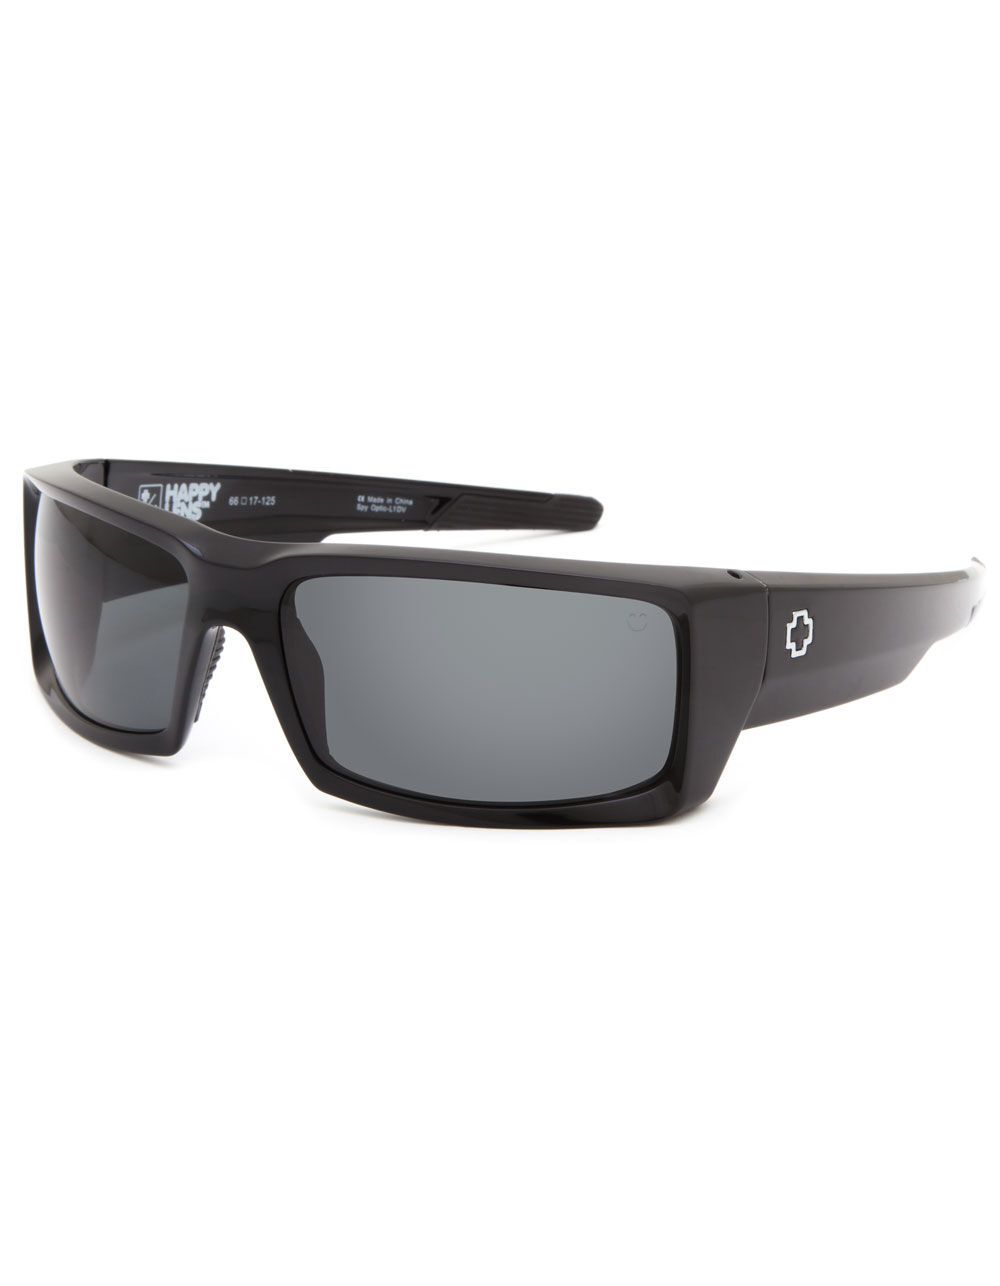 SPY Dale Jr. 88 Collection Happy Lens General Sunglasses